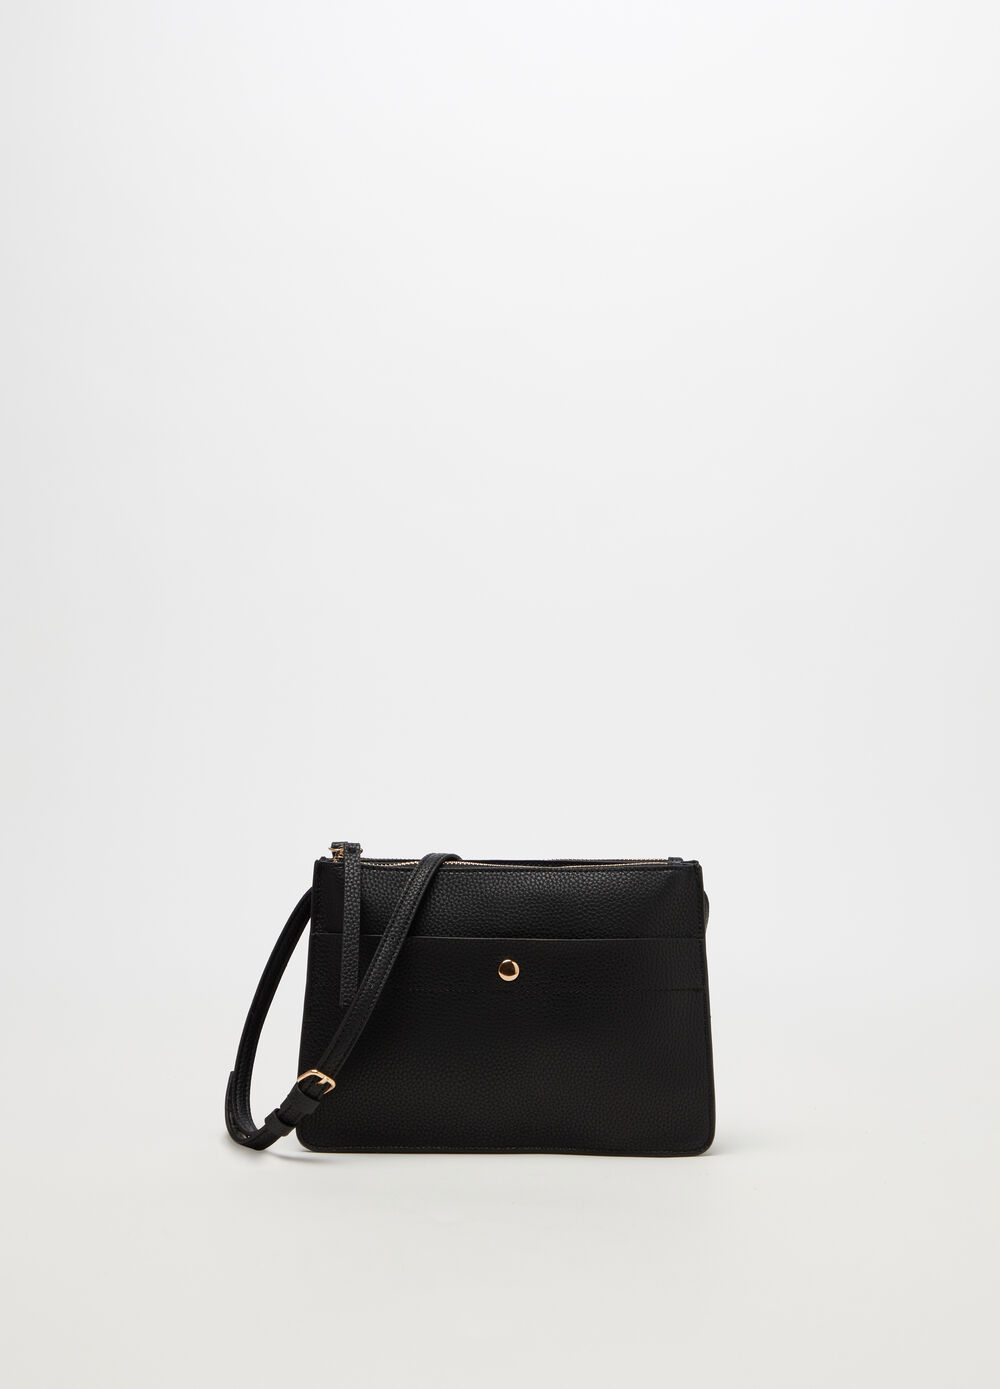 Shoulder bag with two compartments